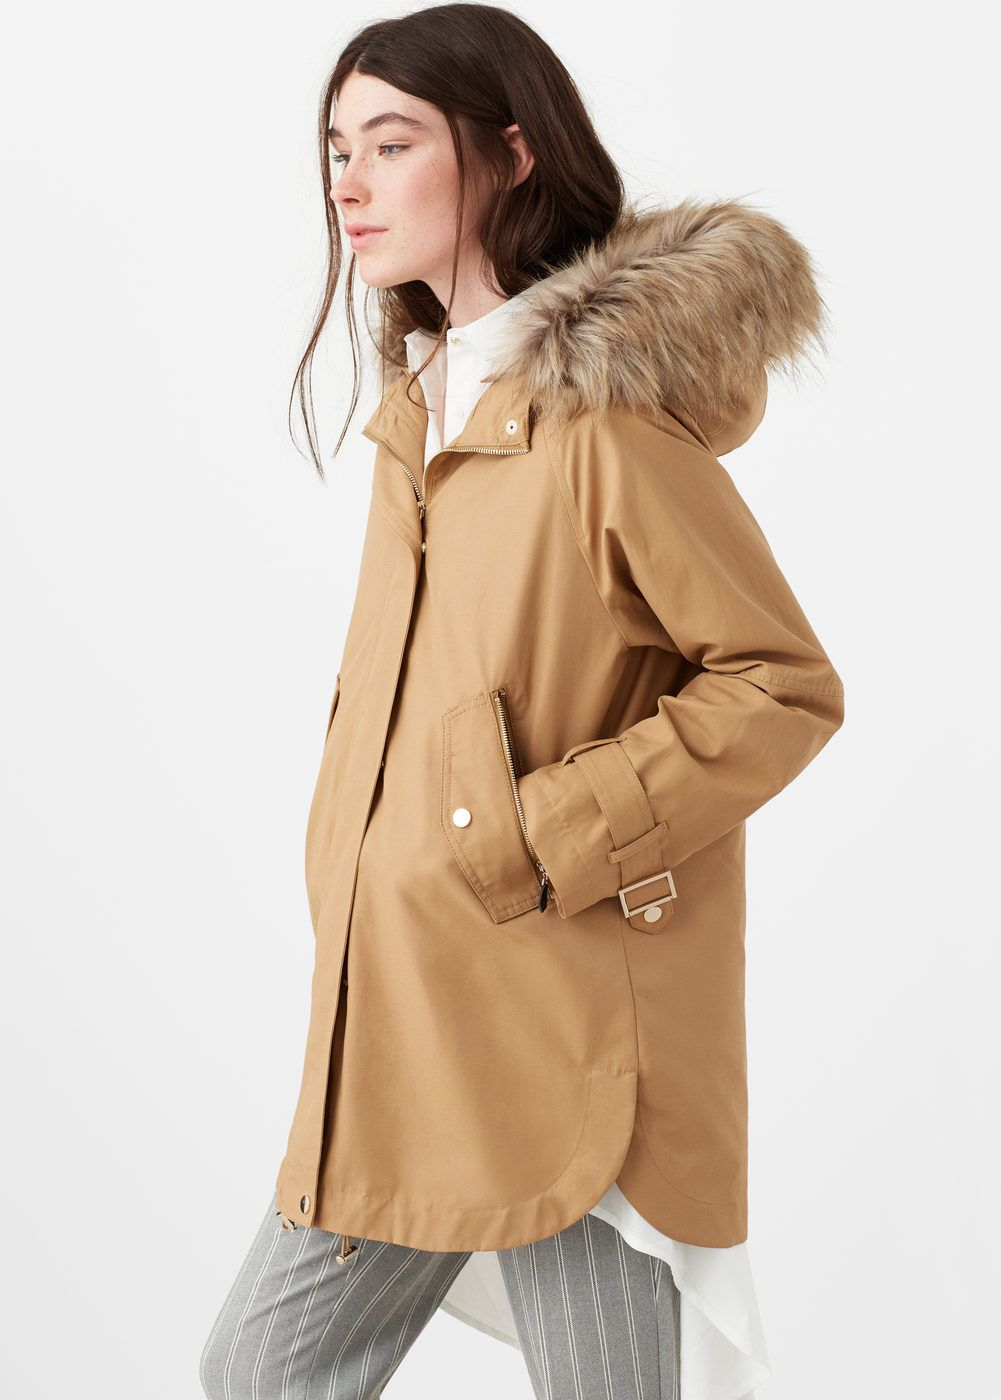 Faux fur appliqué quilted parka - Woman | Parka coat, Fur and Woman : quilted parkas - Adamdwight.com